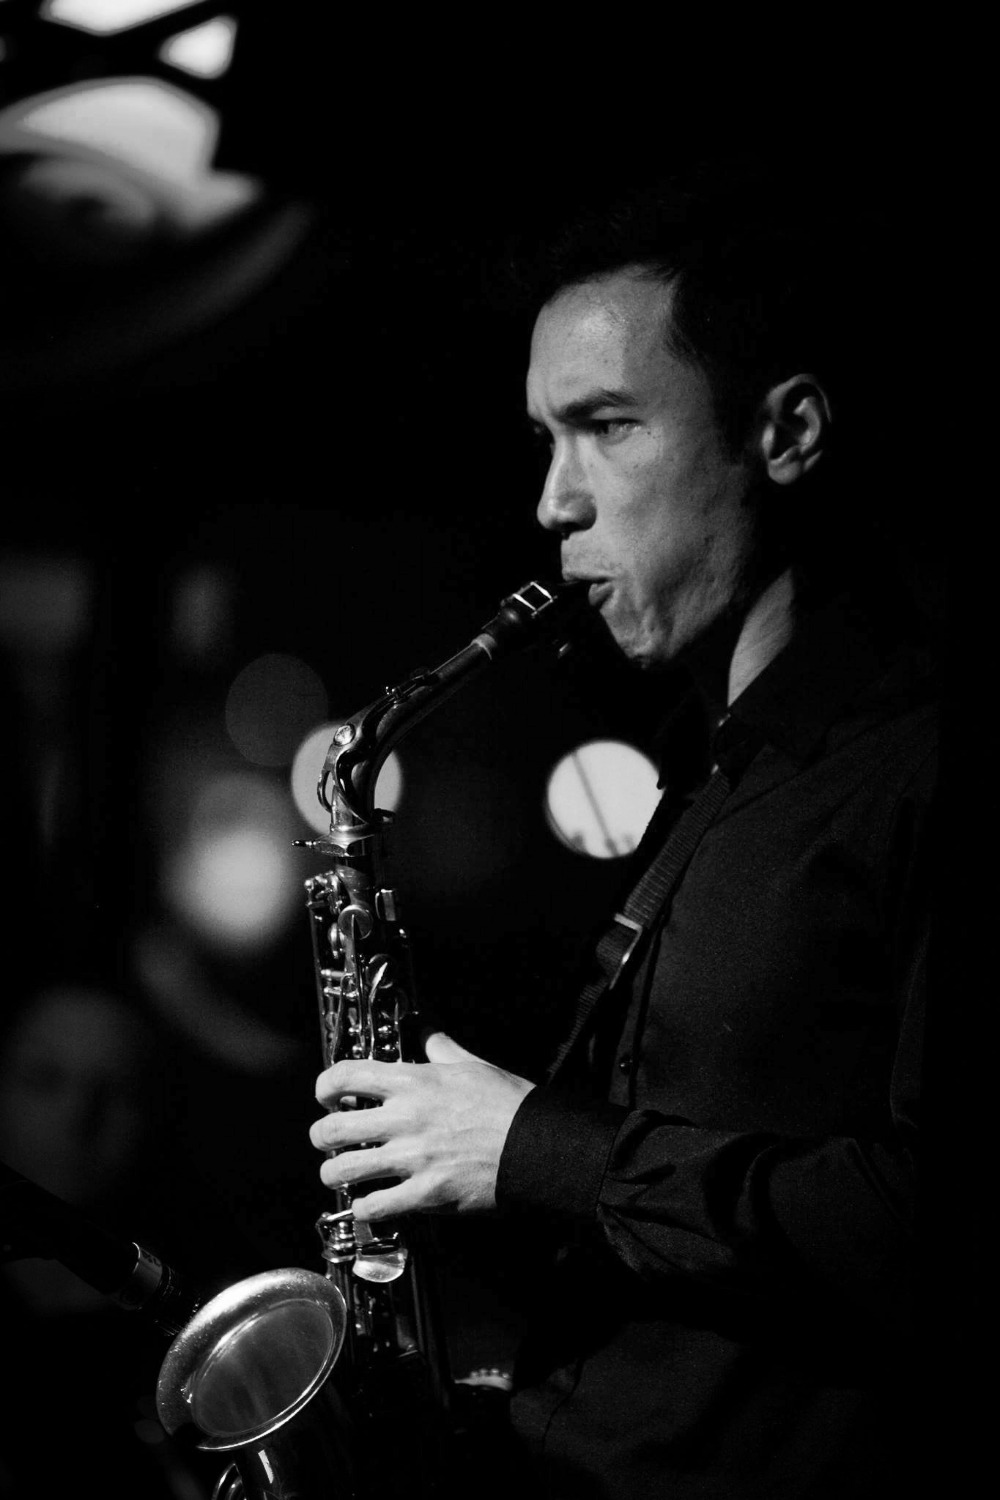 Greg Kennedy (Tenor Sax)